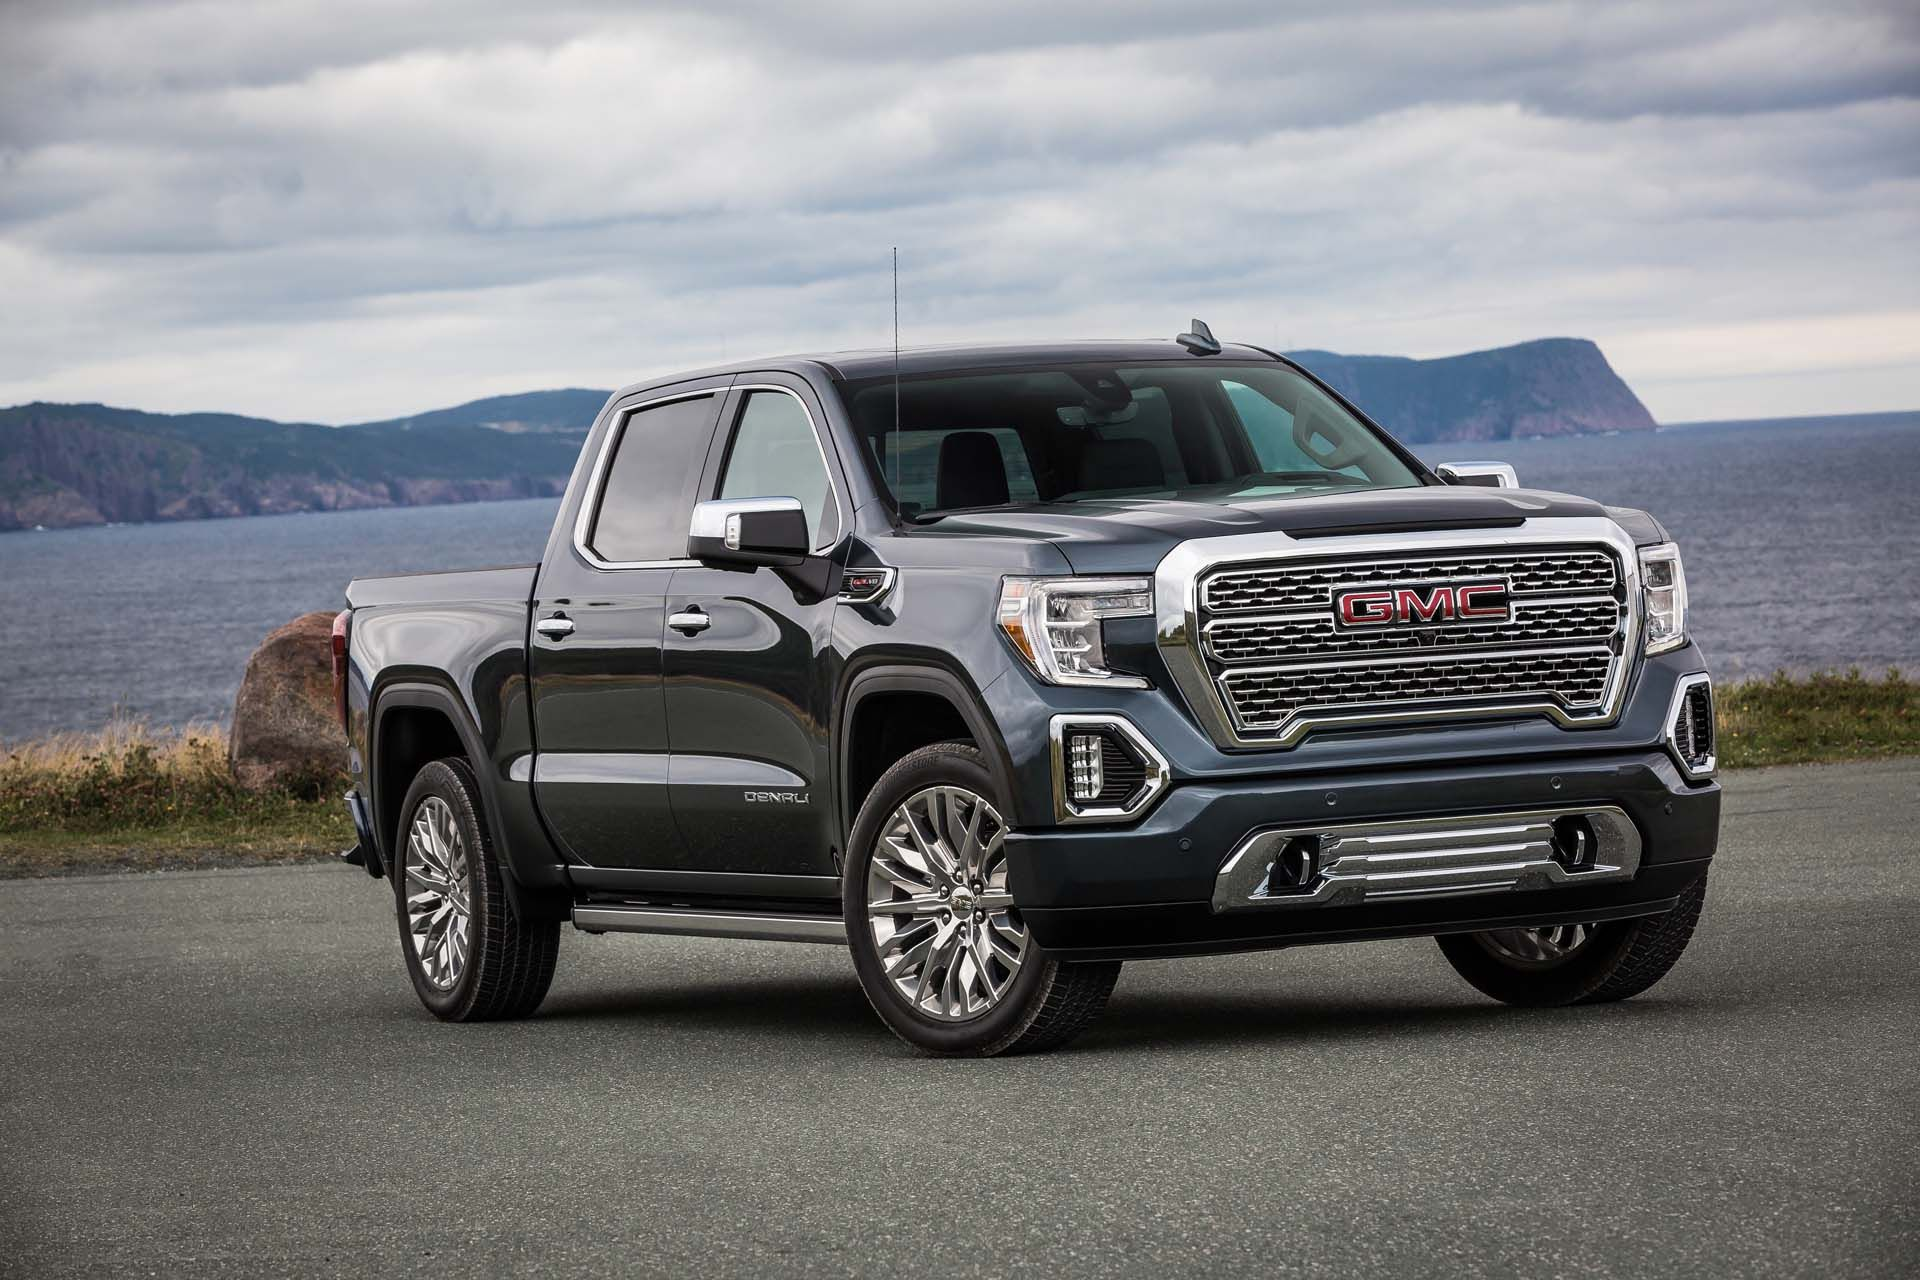 The Best 2020 Gmc Sierra 1500 Sle Review And Review In 2020 Gmc Trucks Sierra Gmc Sierra Denali Denali Truck